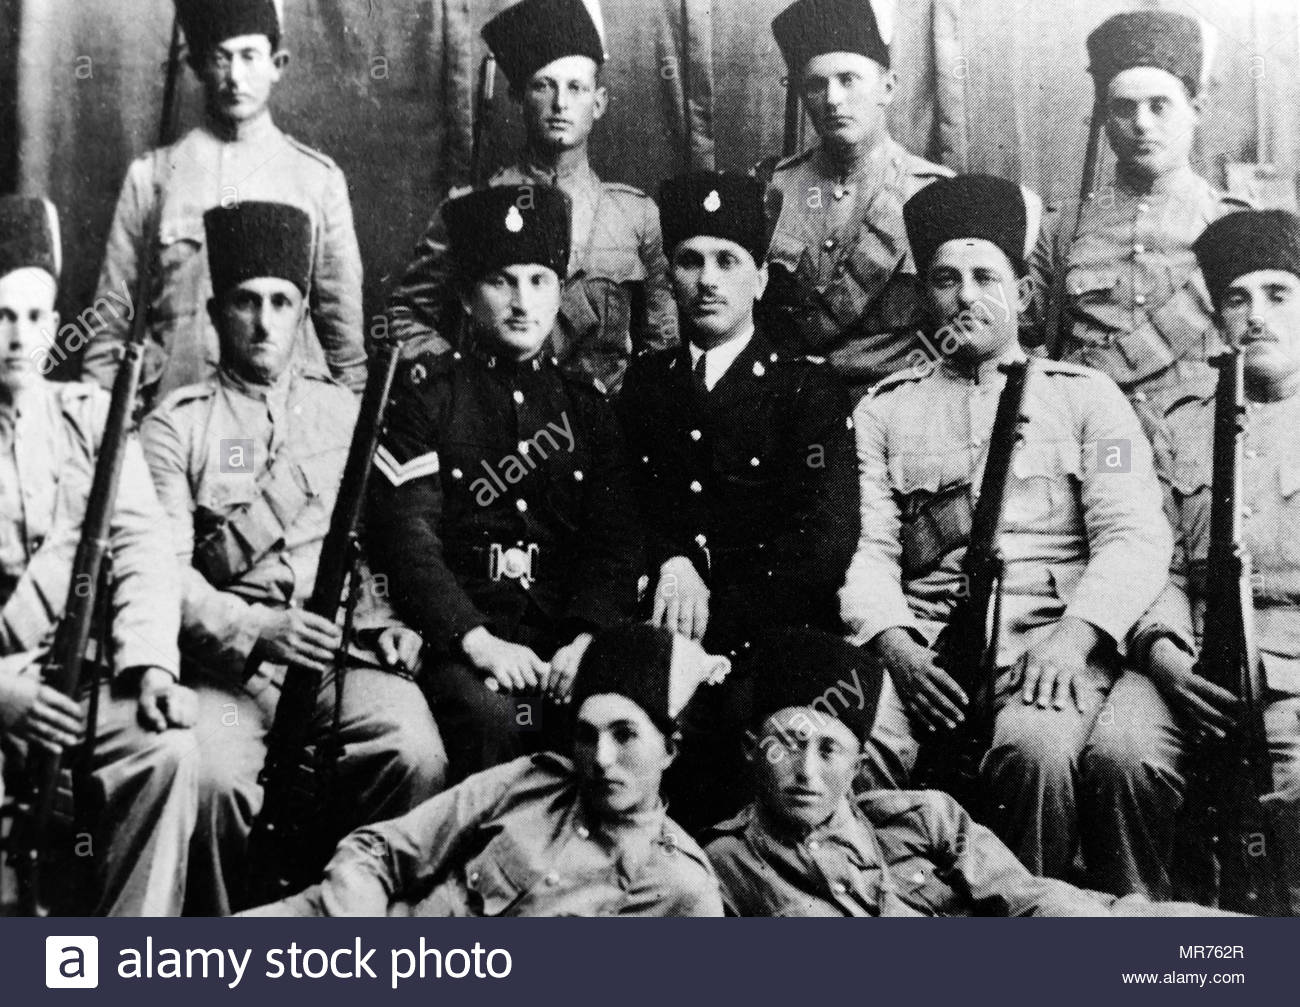 Yigal Allon (back row third from right) in a group of Jewish Settlement Police (JSP), a division of the Notrim established in Mandatory Palestine in 1936, during the 1936-39 Arab revolt. Yigal Allon (1918 – 1980) was an Israeli politician, a commander of the Palmas, and a general in the IDF. He served as one of the leaders of Ahdut HaAvoda party and the Israeli Labour party, and acting Prime Minister of Israel. - Stock Image